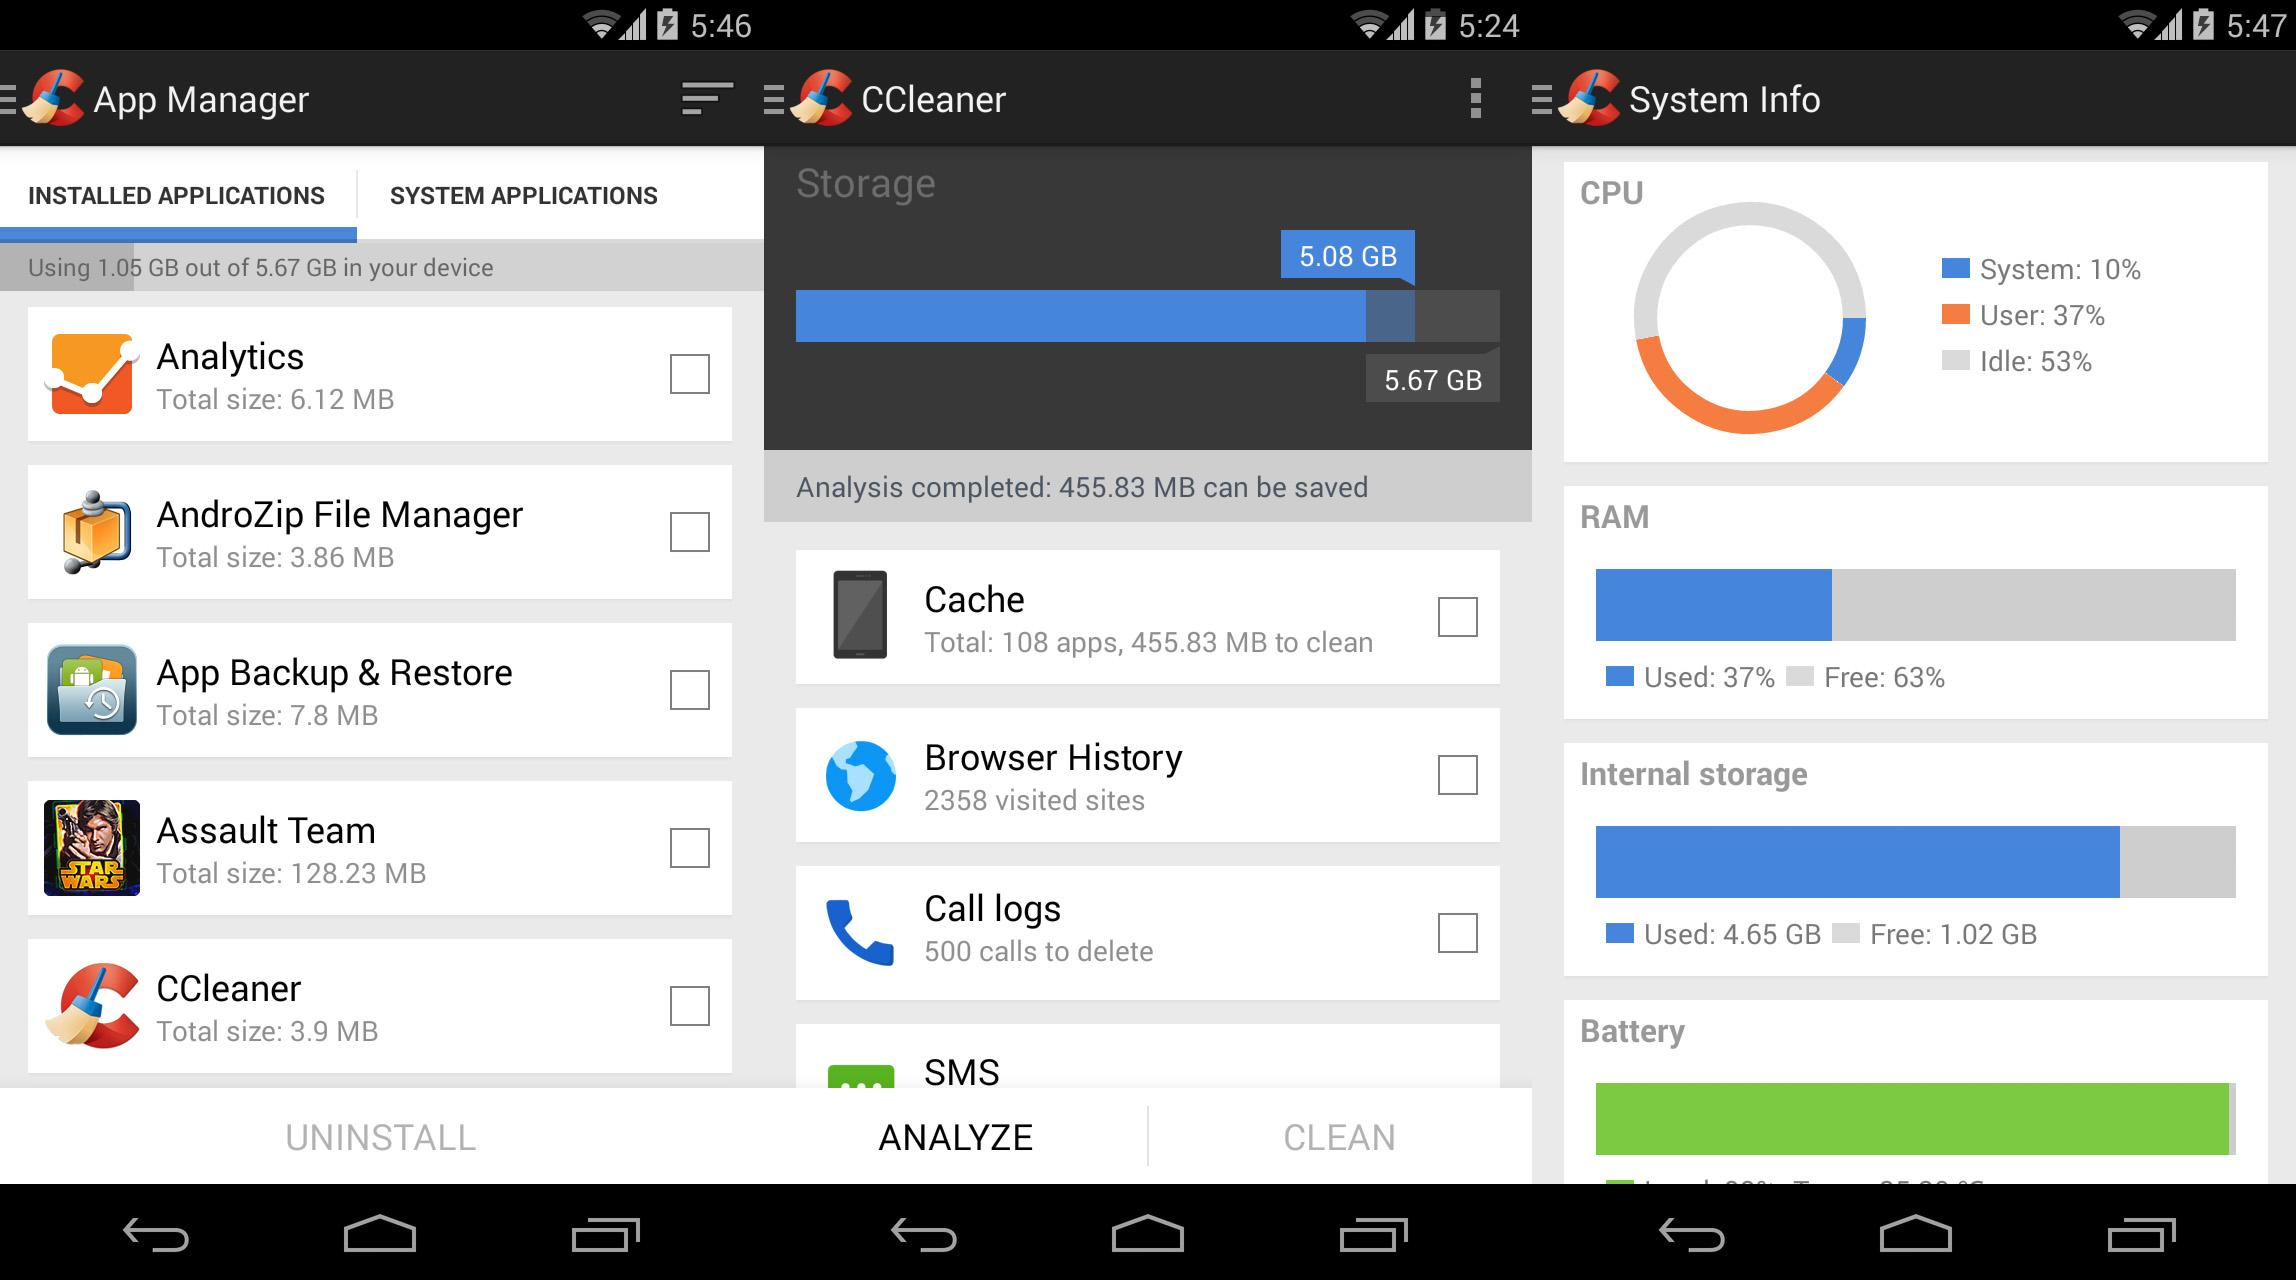 ccleaner pro download